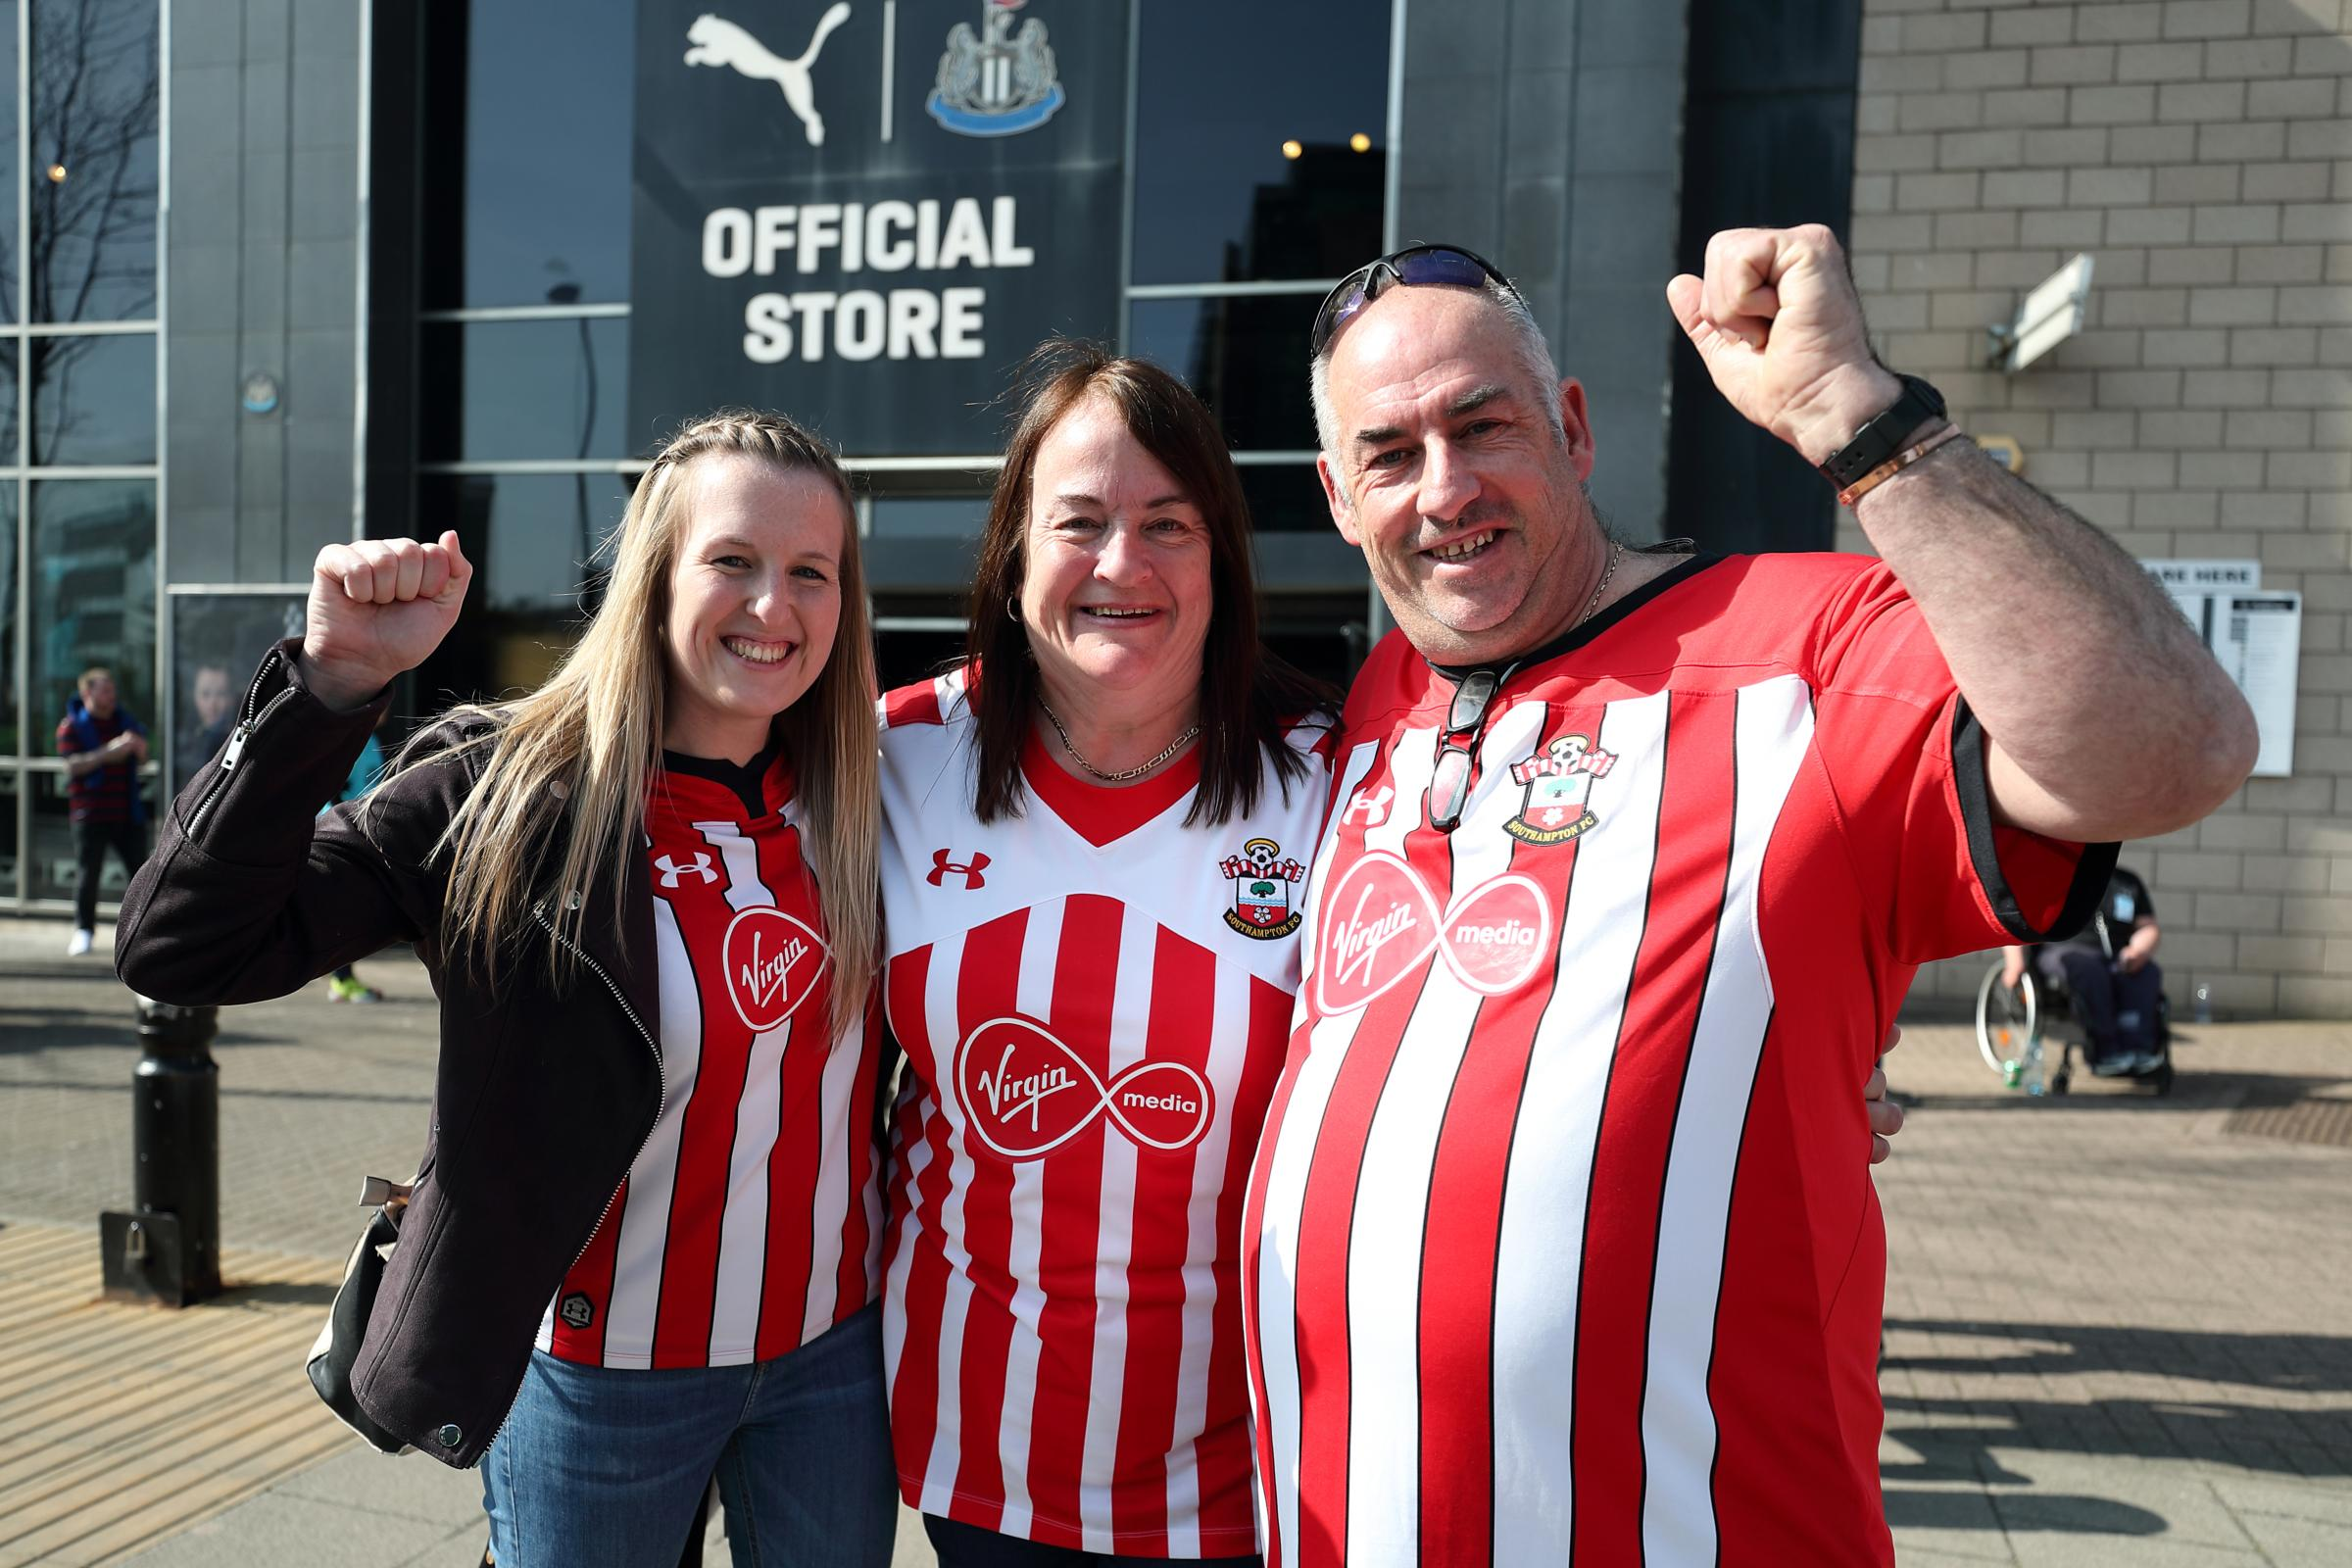 Newcastle v Saints - pictures of the fans and the action